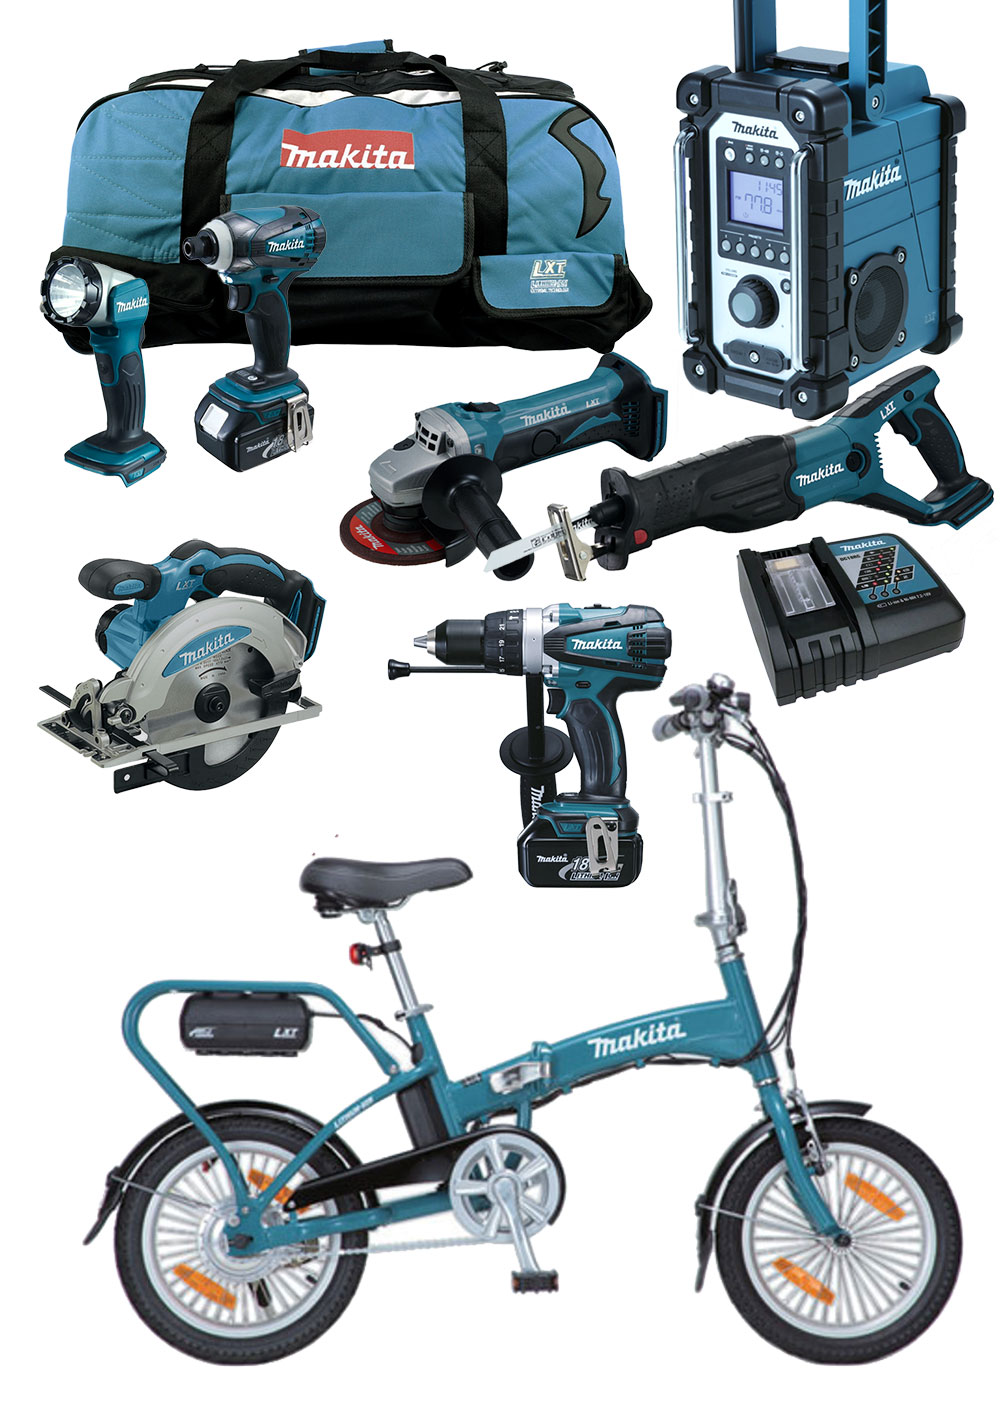 makita 18v profi akku werkzeug set bby180 z elektro klapp fahrrad ebike pedelec ebay. Black Bedroom Furniture Sets. Home Design Ideas